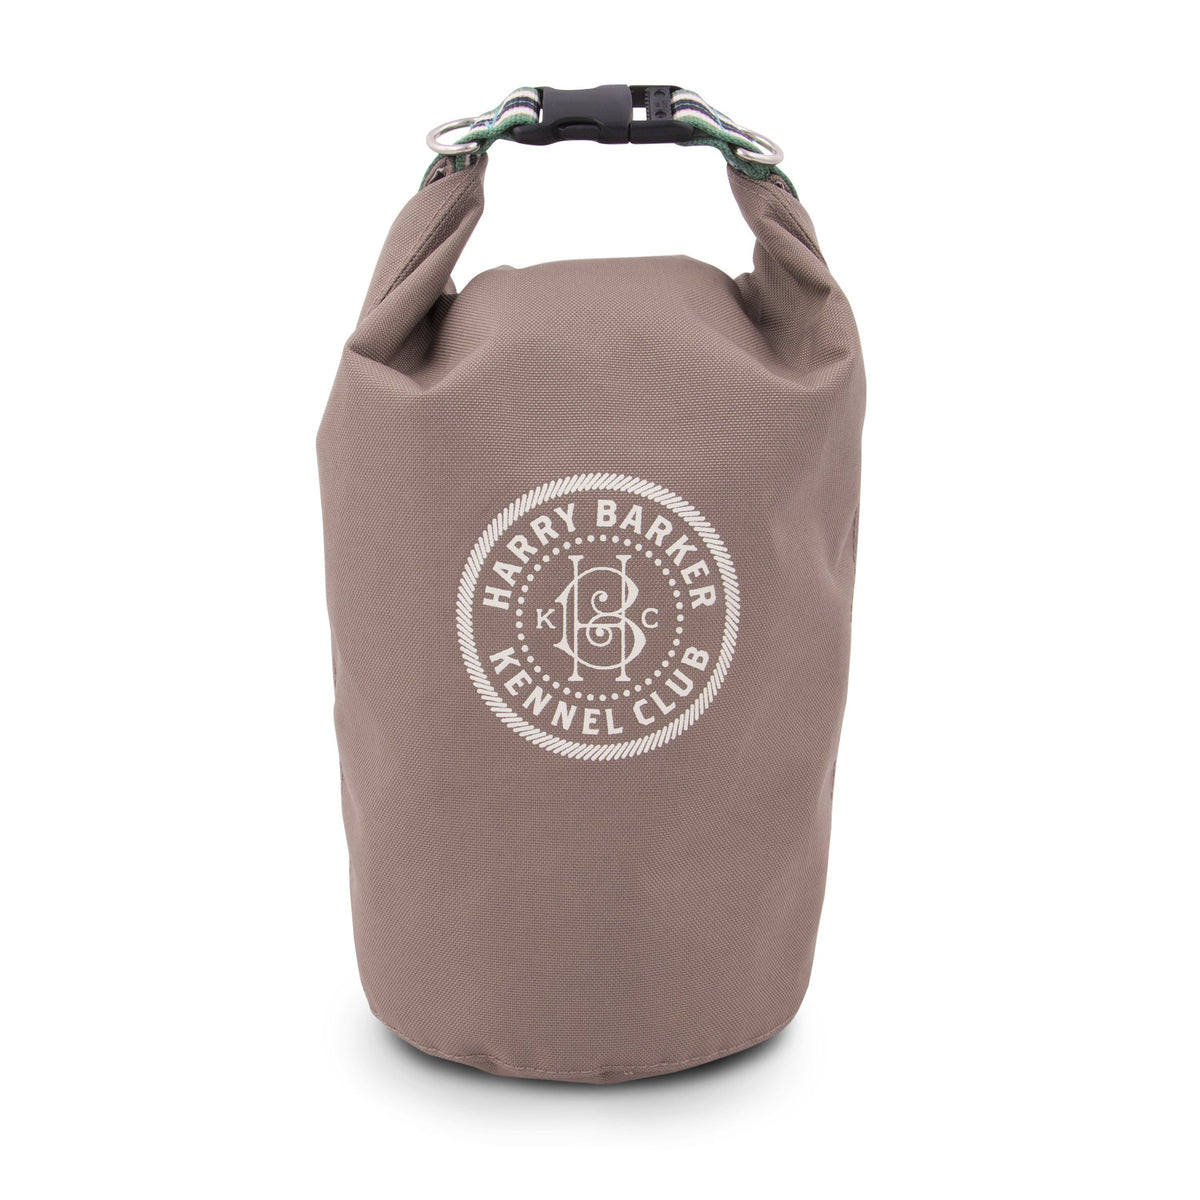 Food Storage - Kennel Club Travel Food Storage Bag